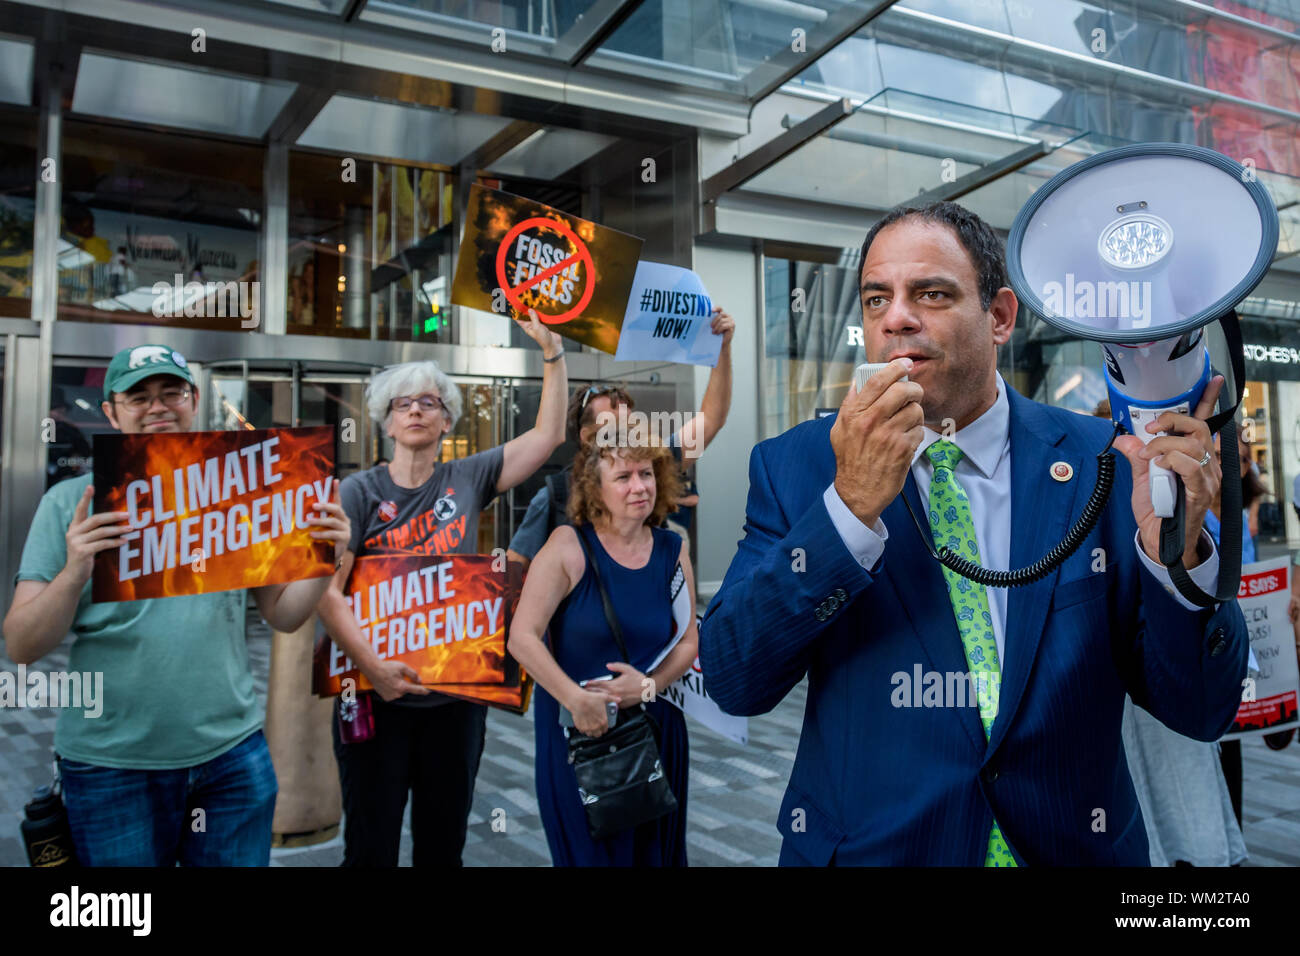 New York, USA. 4th Sep, 2019. NY City Council Member Costa Constantinides - Hundreds of climate activivsts gathered outside the CNN studios at 30 Hudson Yards where a Town Hall on Climate Policy was held on September 4, 2019 to tell the leading Democratic Party presidential candidates that it's time for them all to commit to the boldest and fastest climate actions now. Credit: Erik McGregor/ZUMA Wire/Alamy Live News Stock Photo